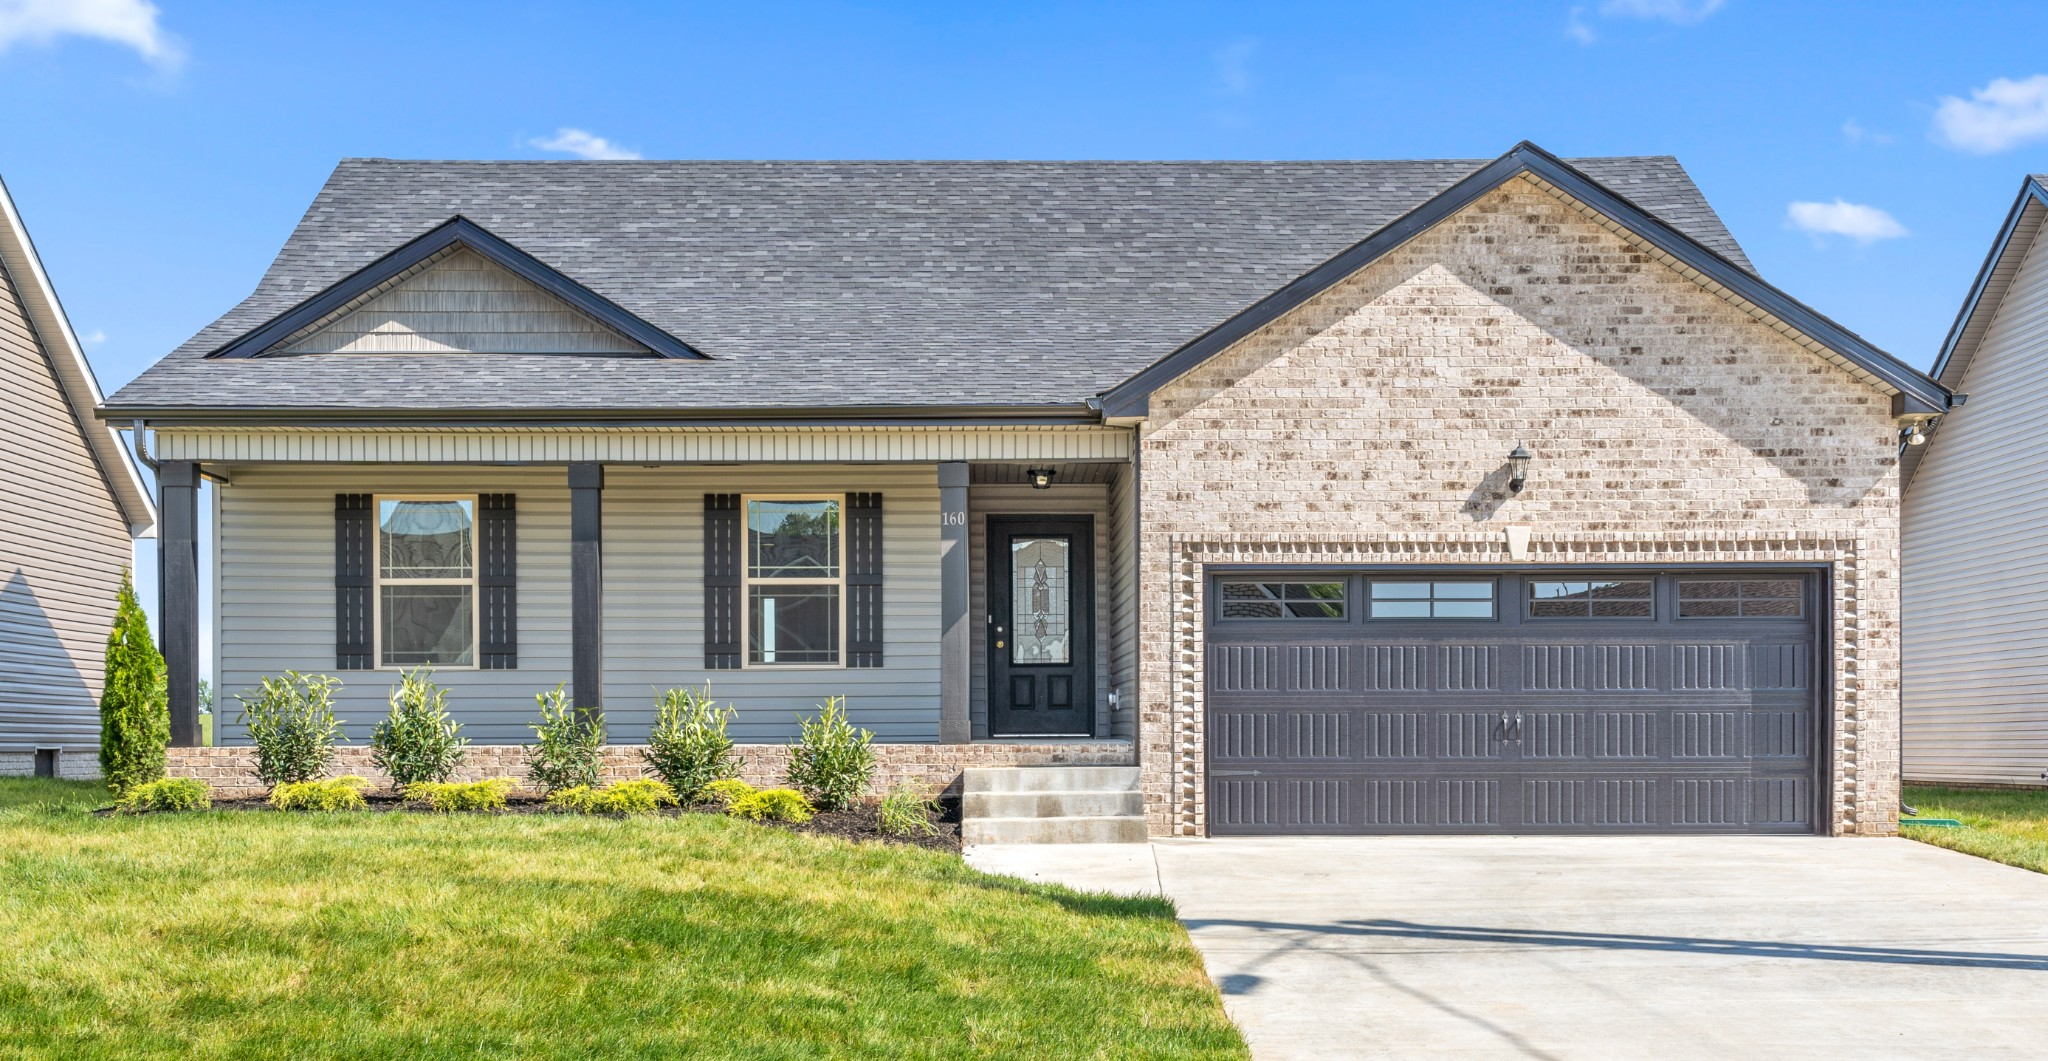 26 Rose Edd, Oak Grove, KY 42262 - Oak Grove, KY real estate listing